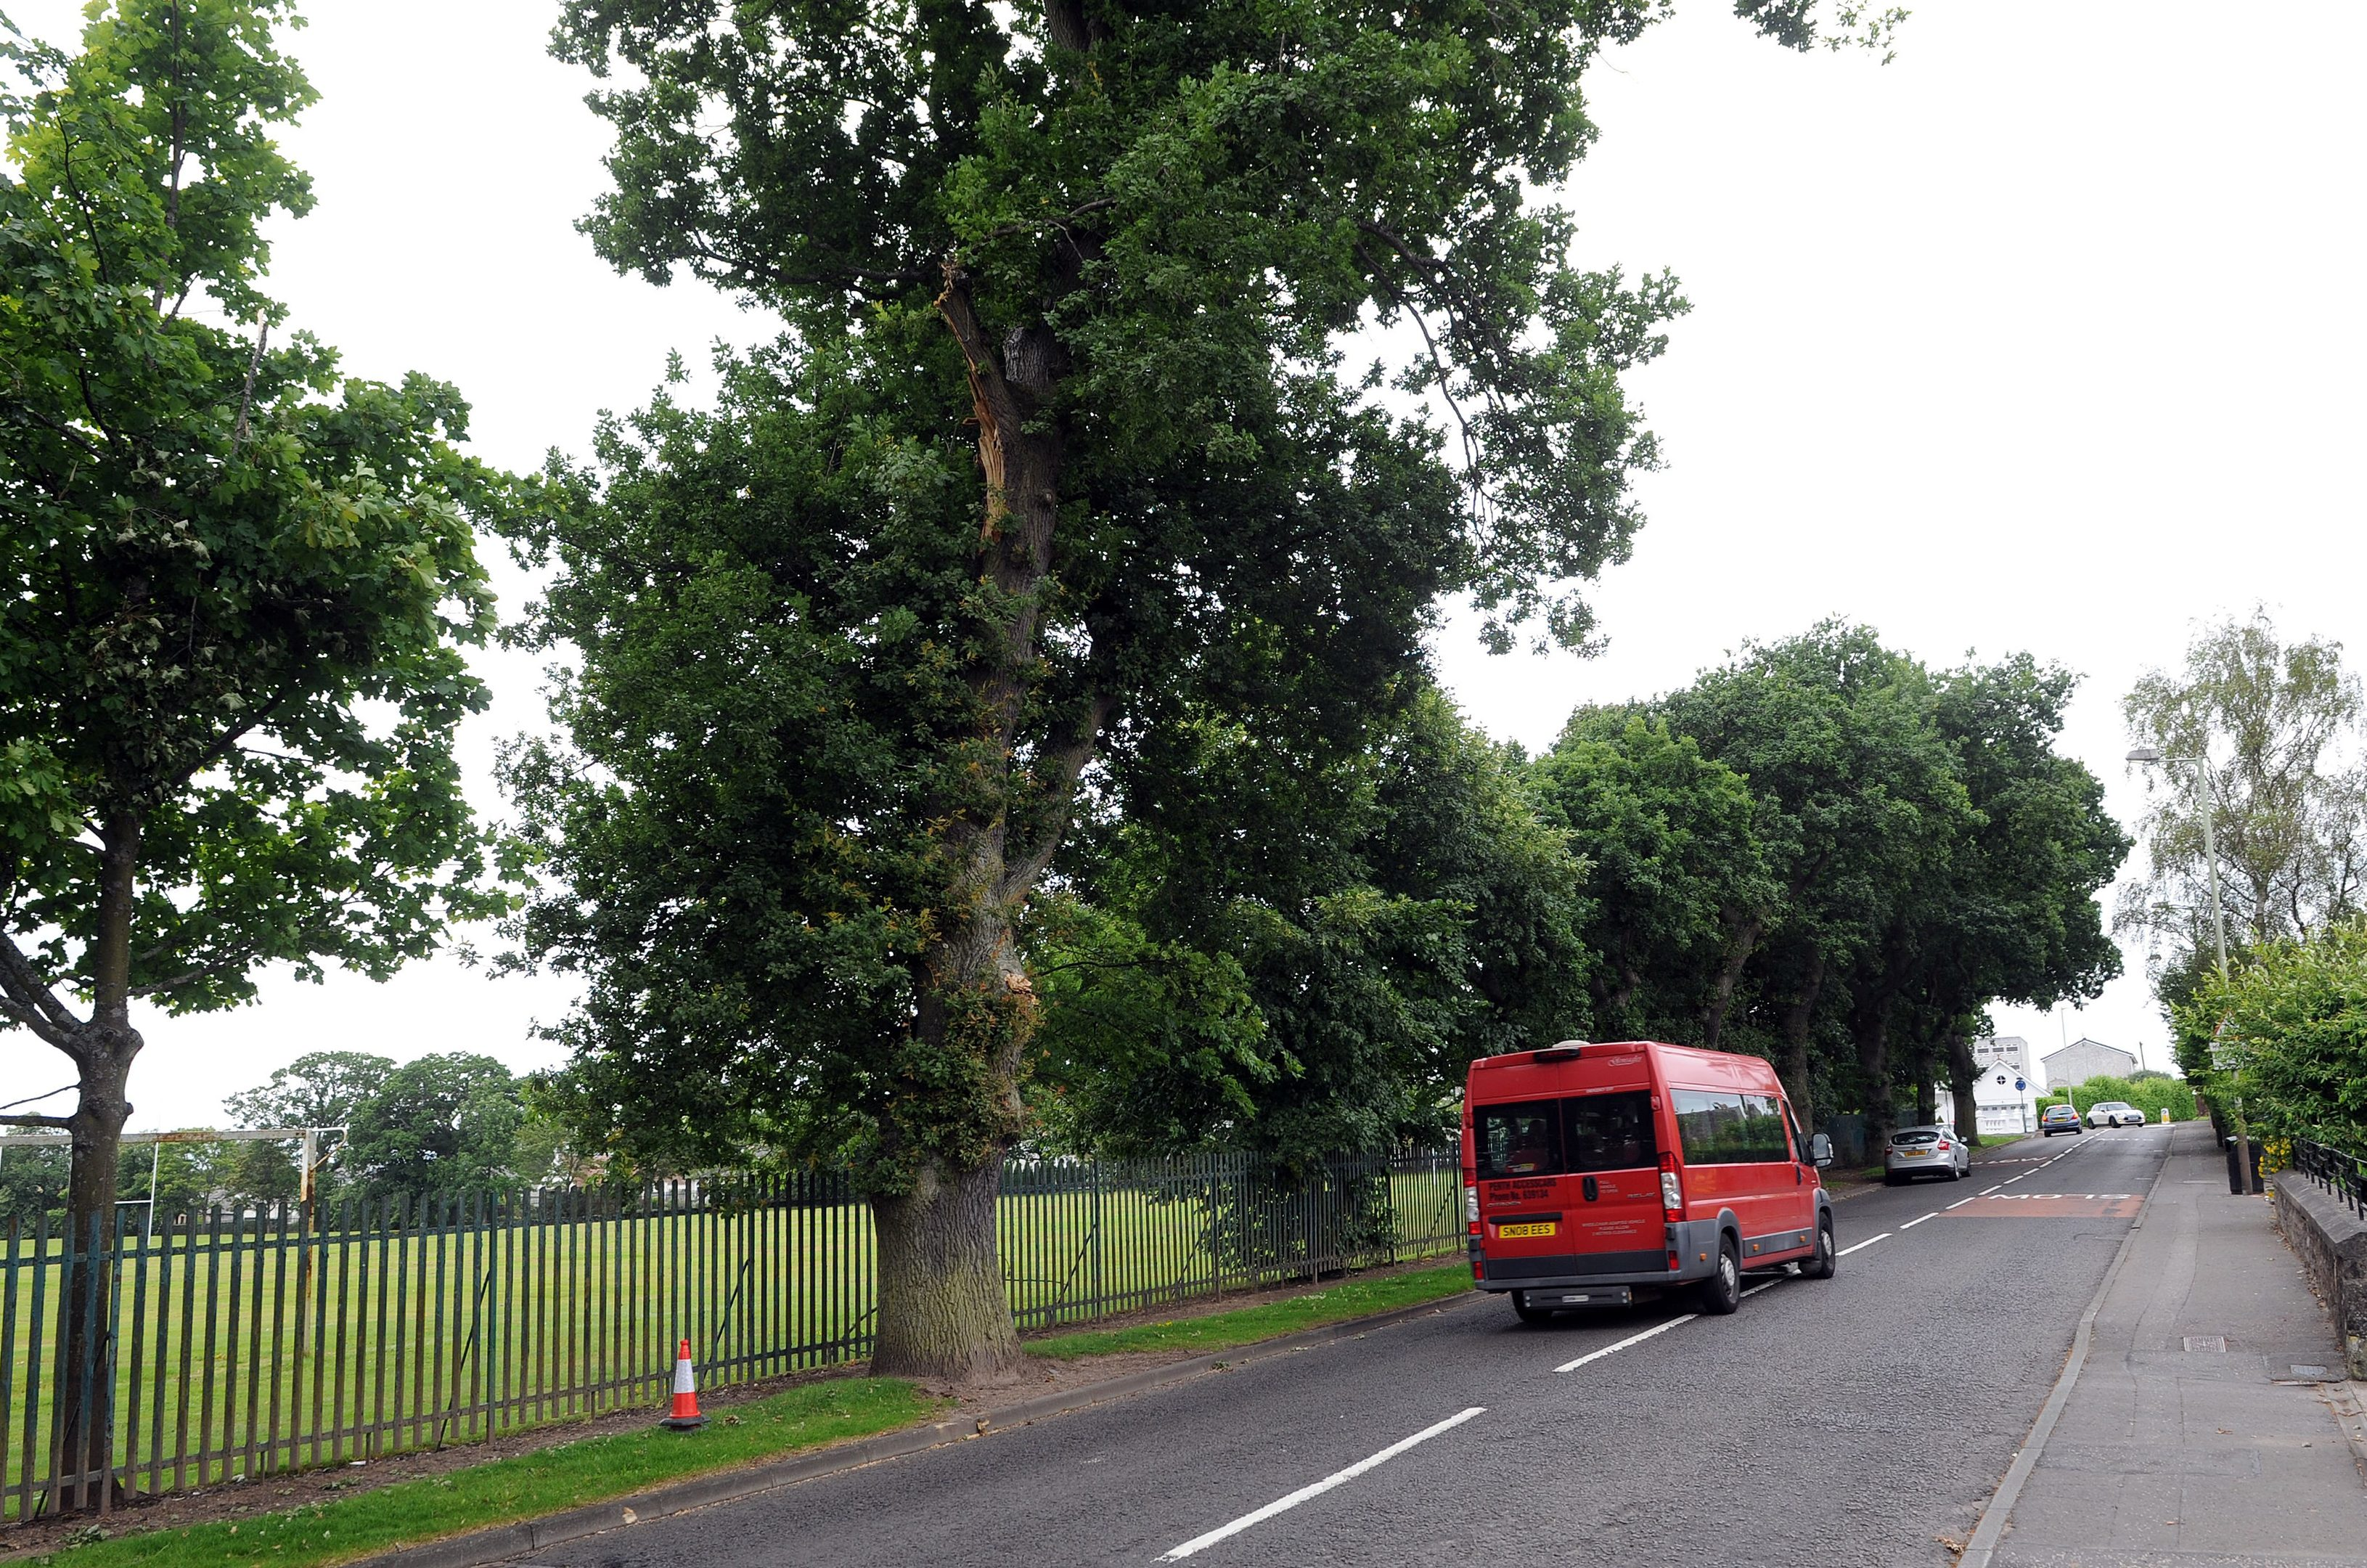 The trees on Viewlands Road, Perth, including the one which lost a branch.